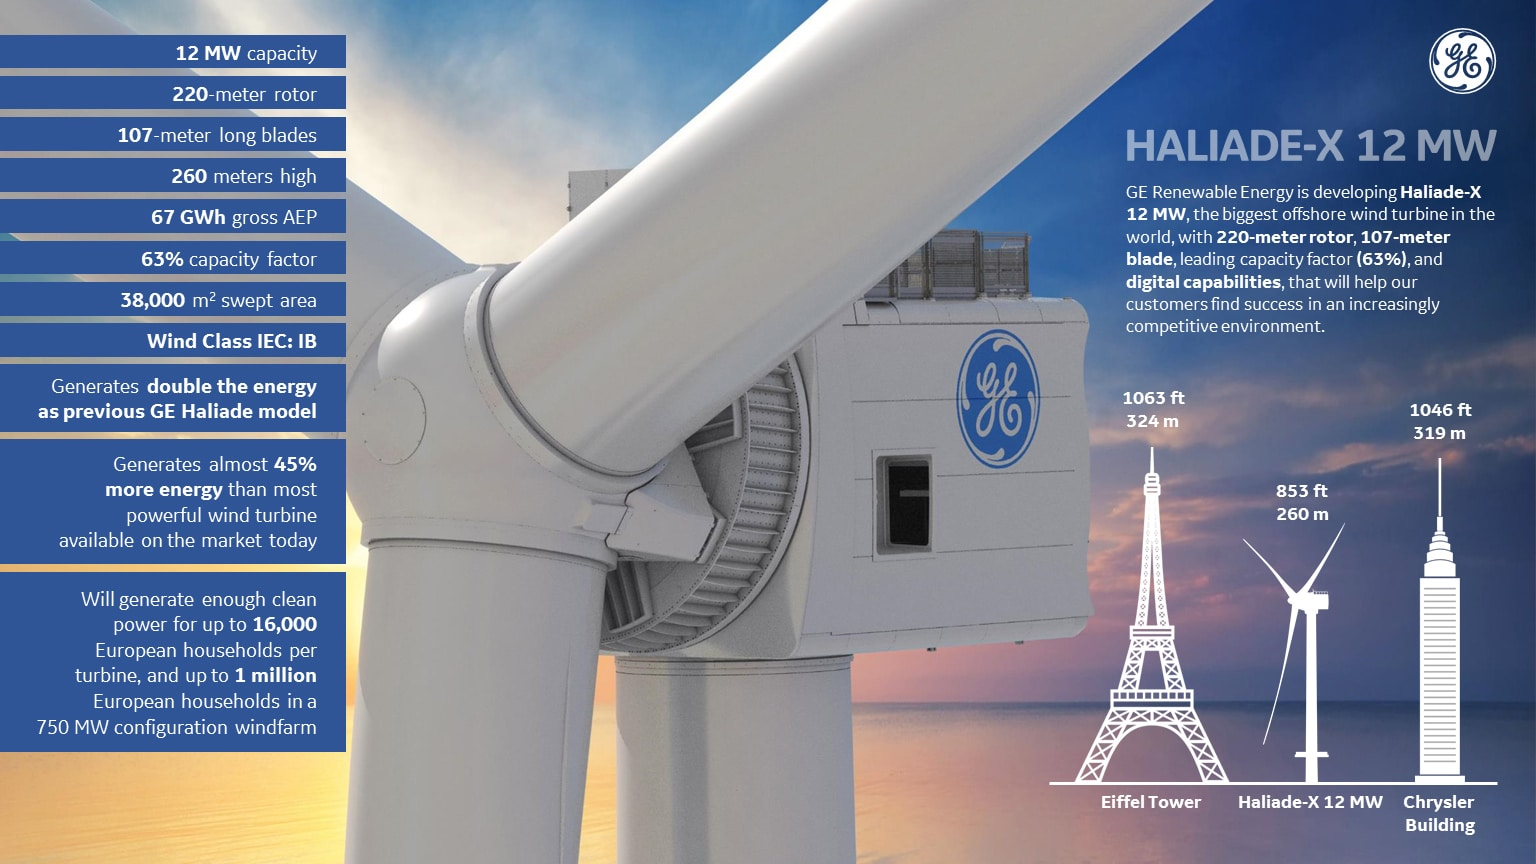 Illustration from GE, showing the planned largest windmill in the world, next to the Eiffel Tower and the Chrysler Building.